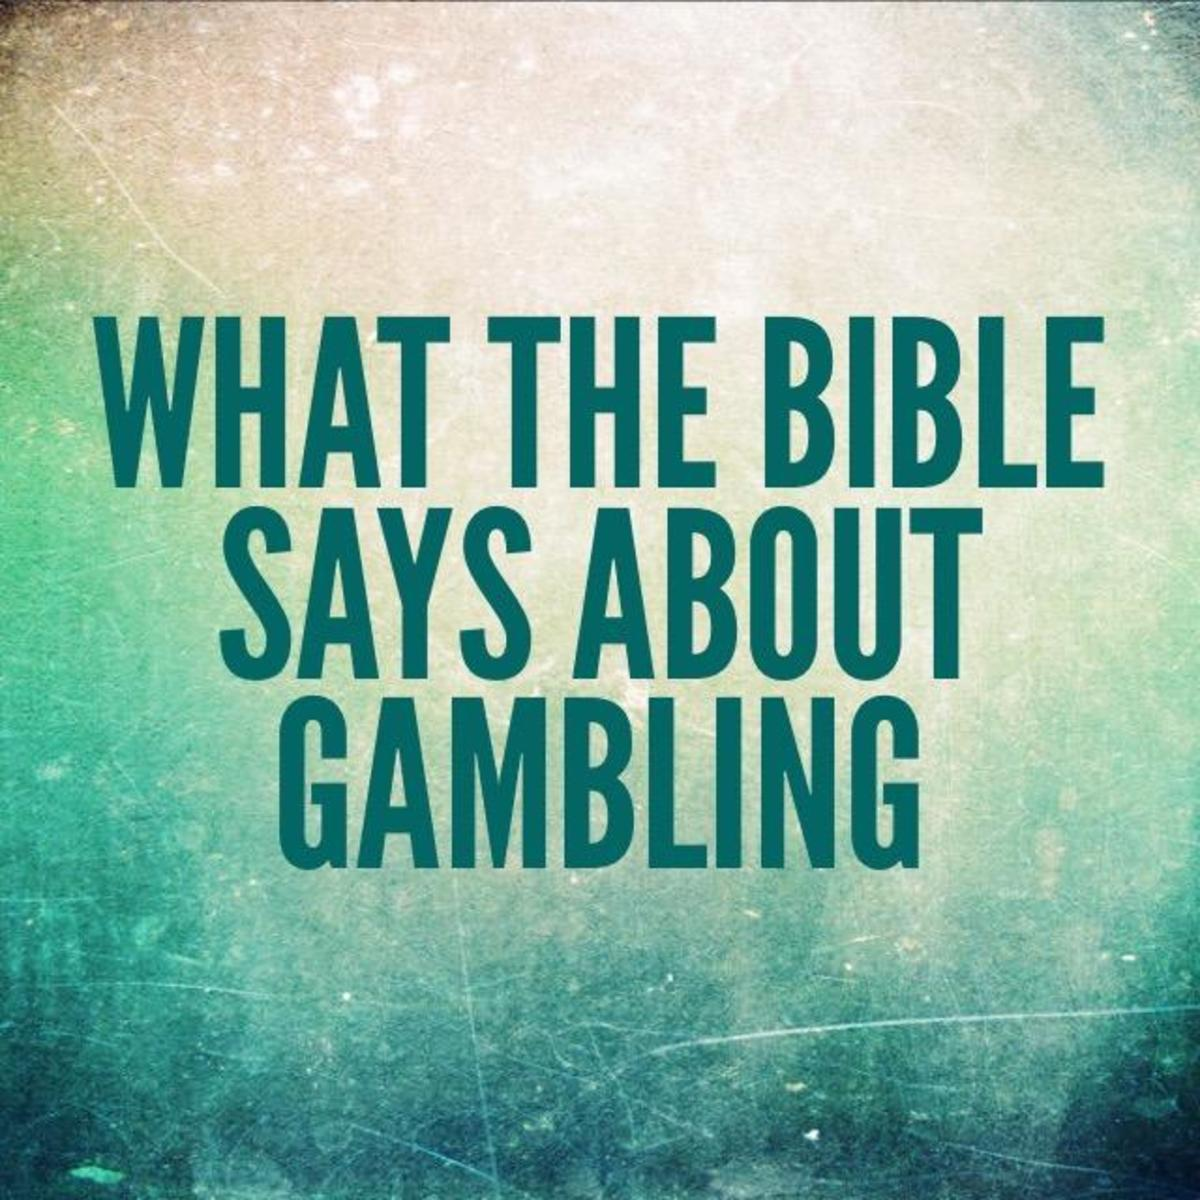 What the Bible Says About Gambling